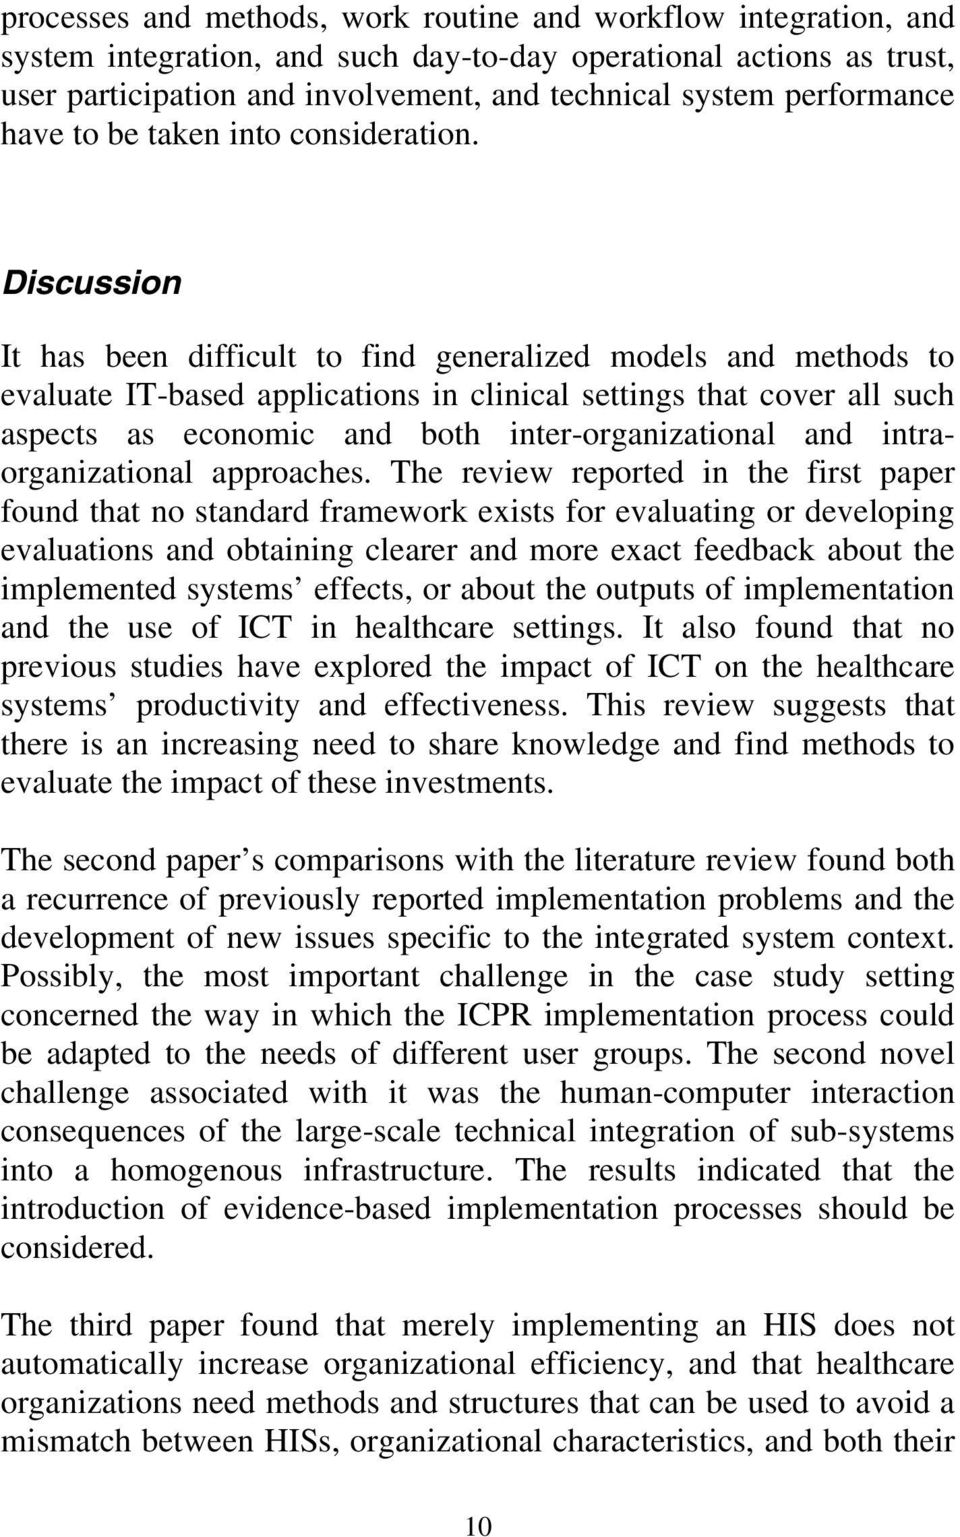 Discussion It has been difficult to find generalized models and methods to evaluate IT-based applications in clinical settings that cover all such aspects as economic and both inter-organizational